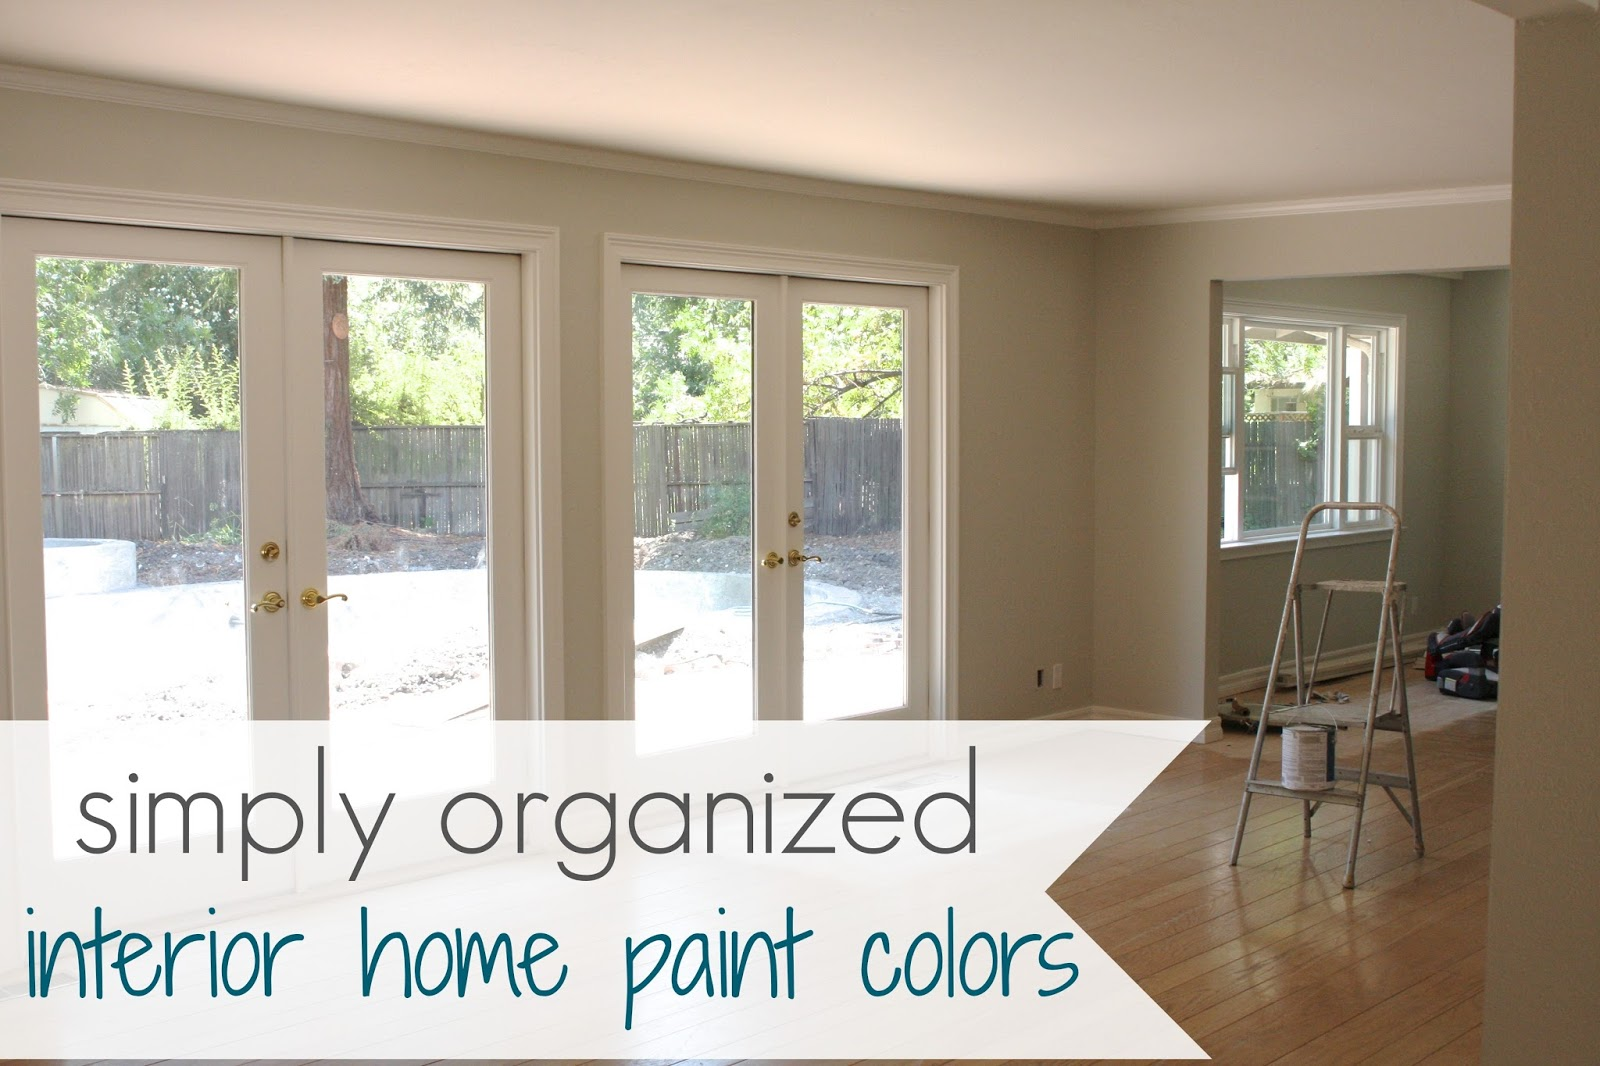 Simply organized my home interior paint color palate - Home interior painters ...